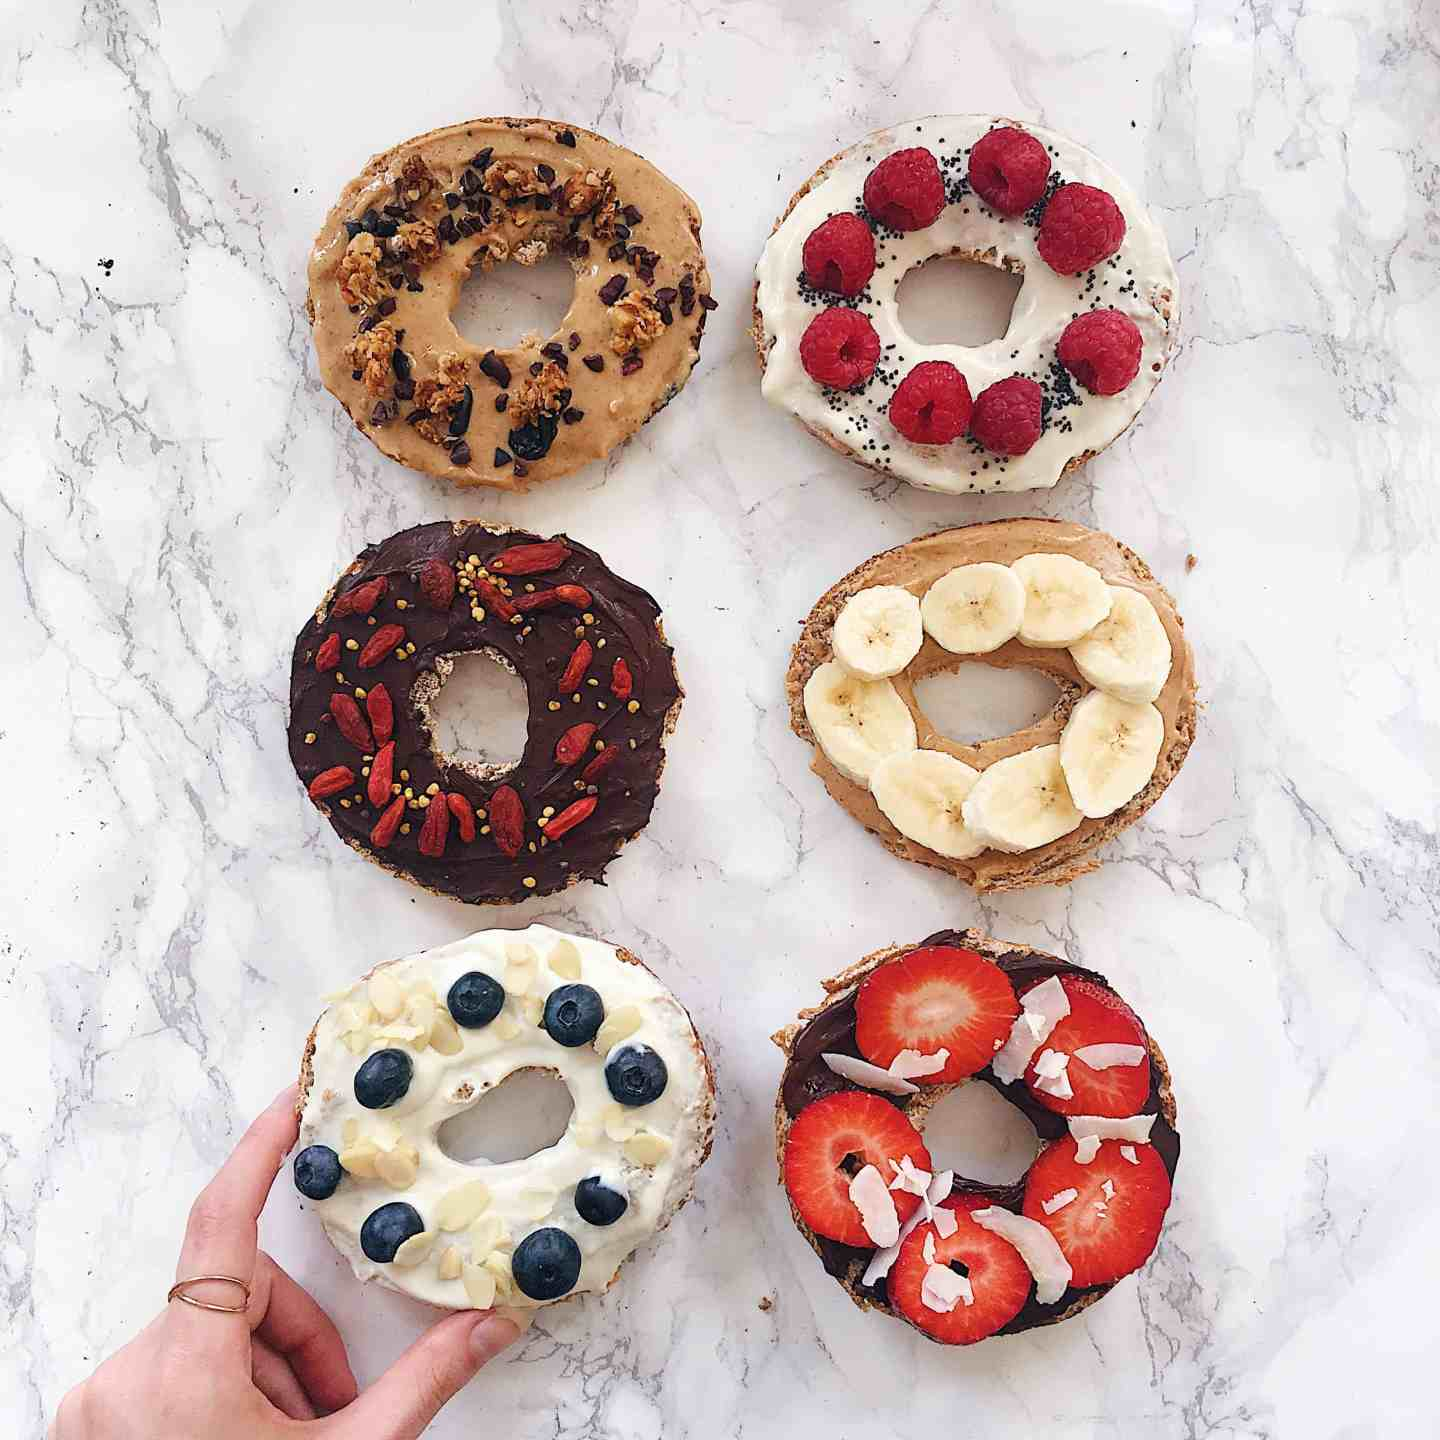 My Favourite Healthy Sweet Bagel Toppings